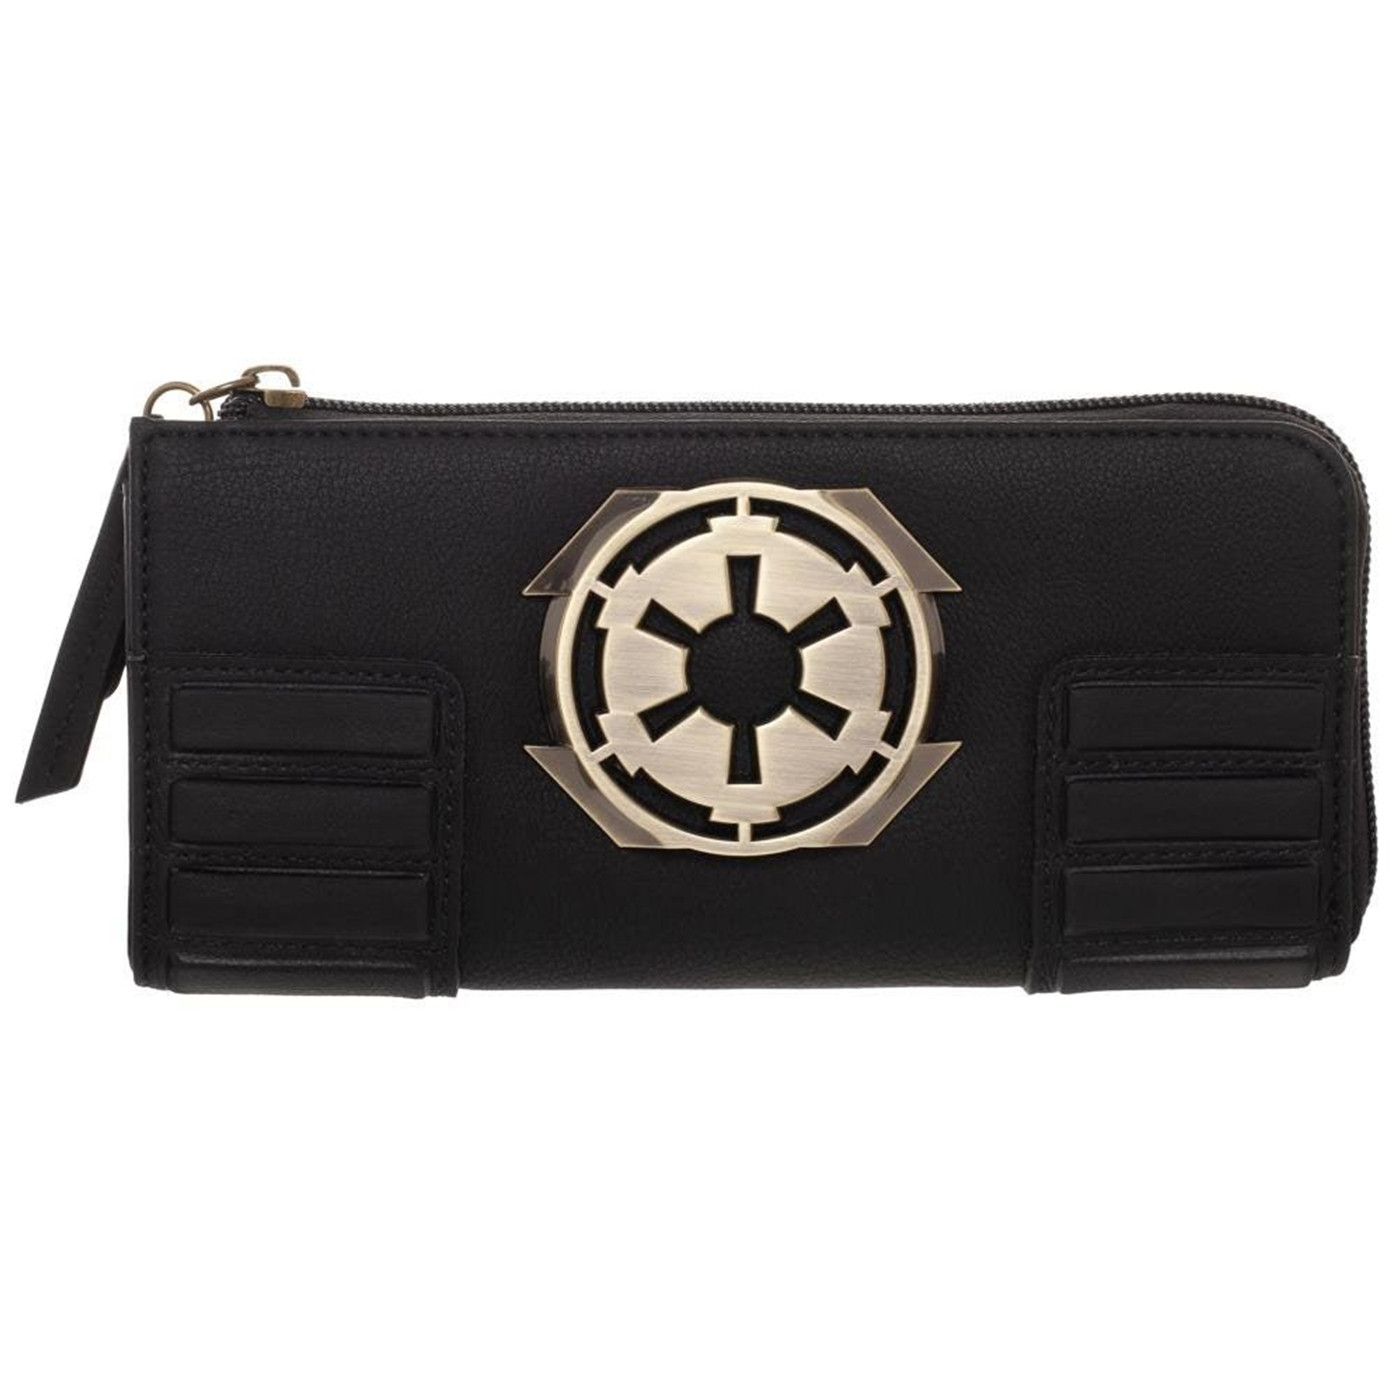 Heroes & Villains Scout Trooper Zip Around Wallet